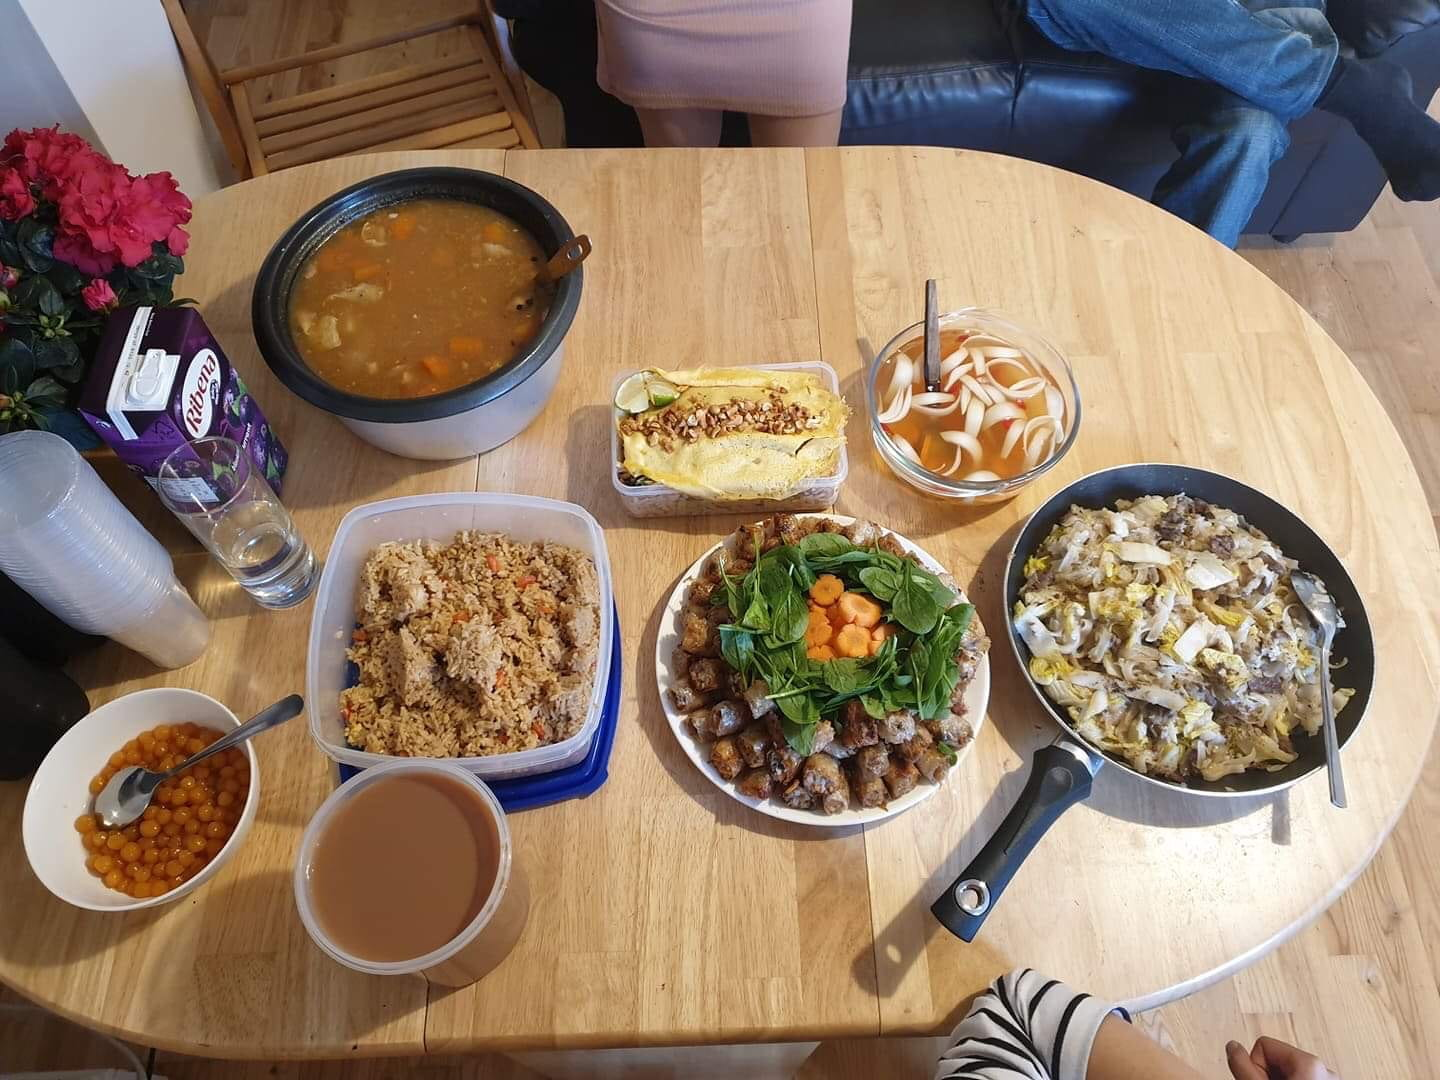 Table filled with international homemade dishes